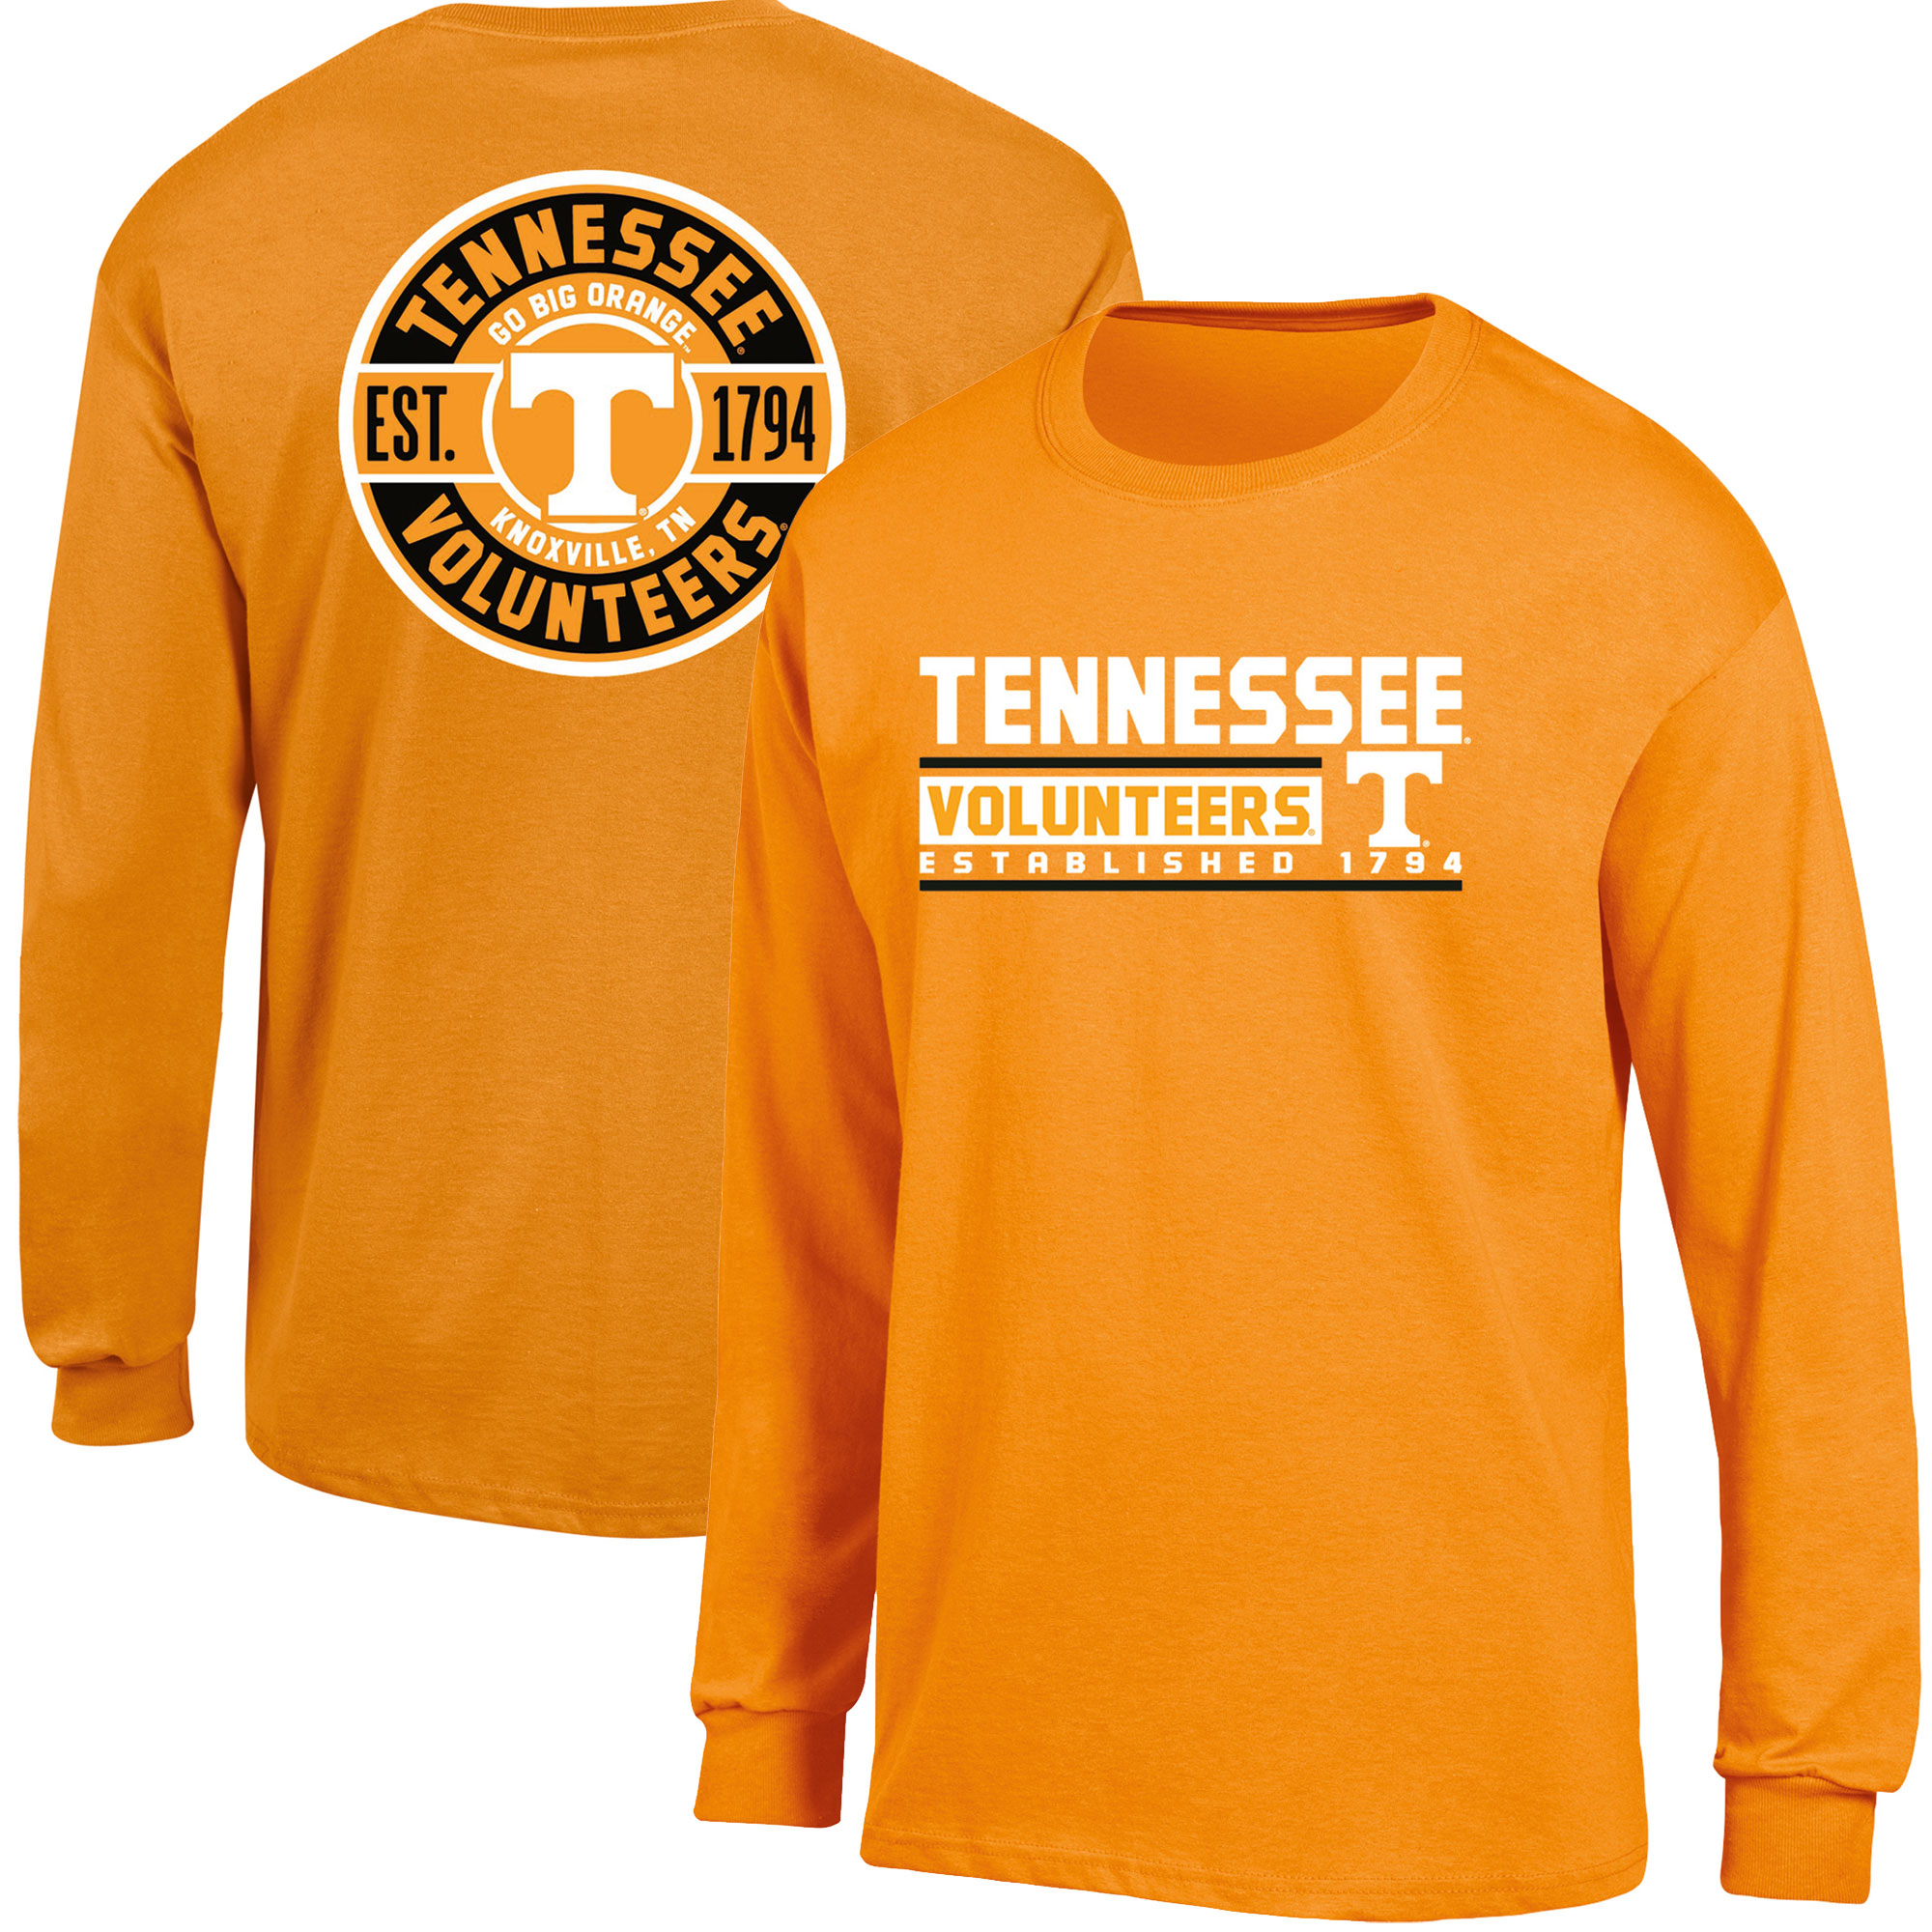 c6d285f6 Tennessee Volunteers Team Shop - Walmart.com